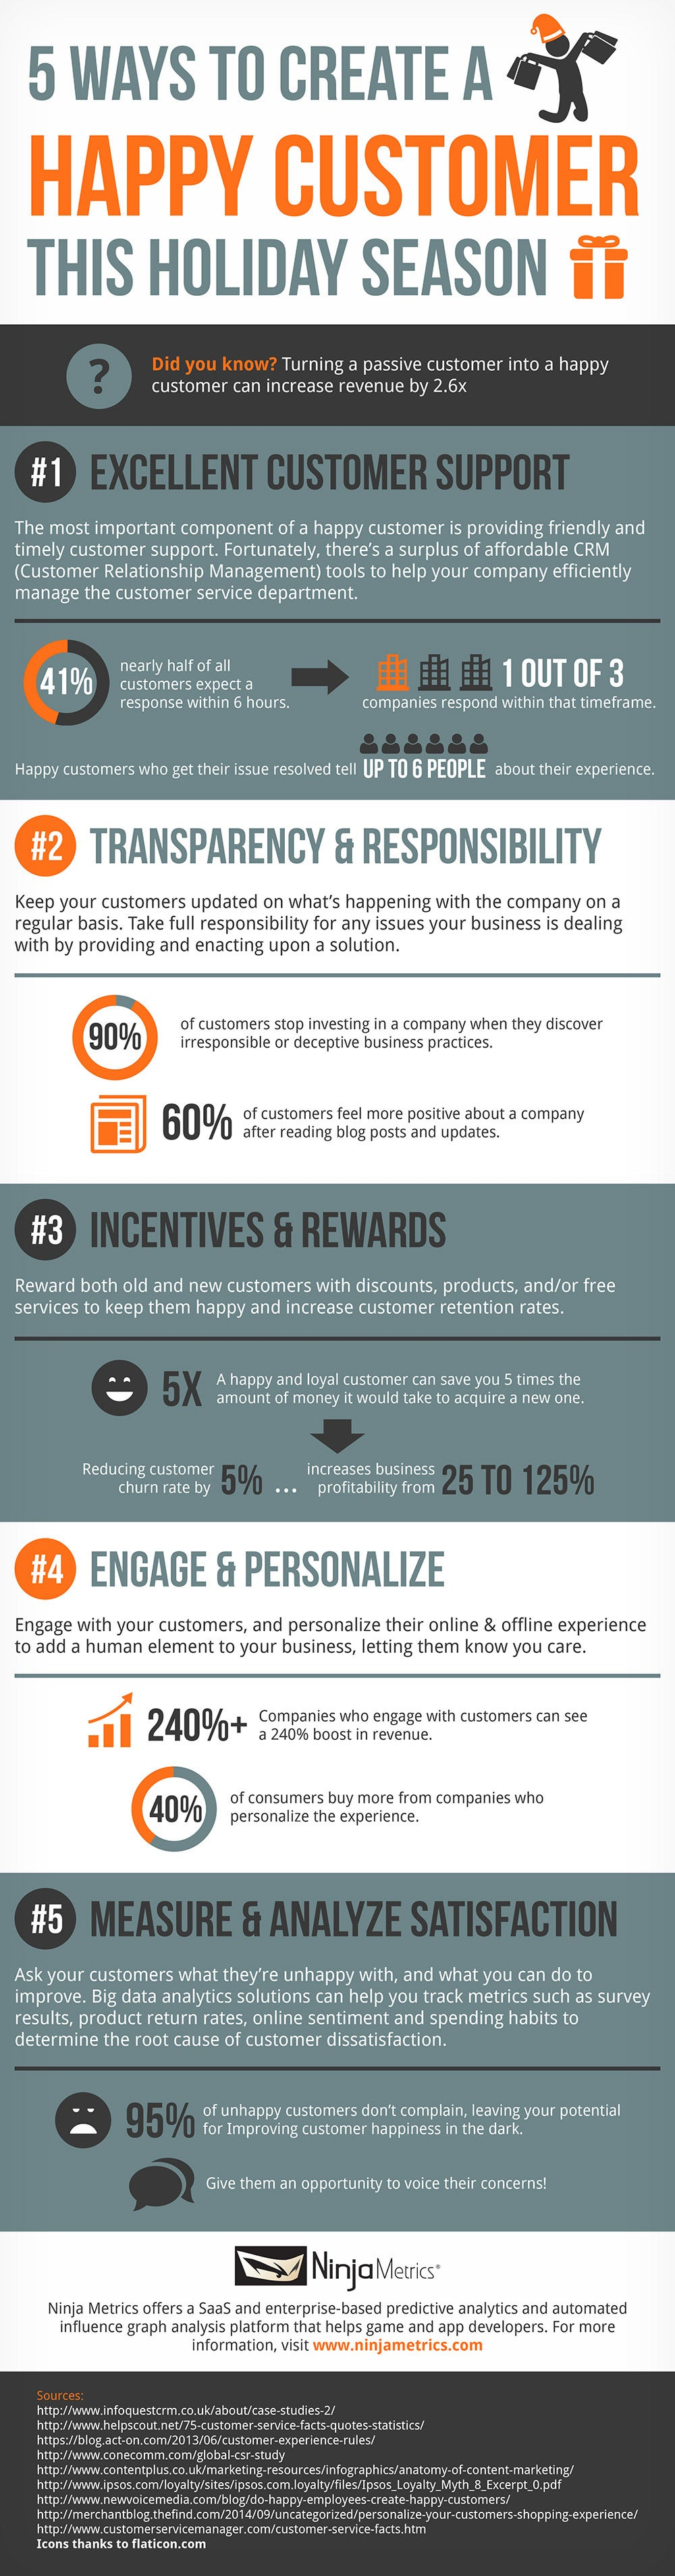 If You Want Happy Customers, Do These 5 Things (Infographic)